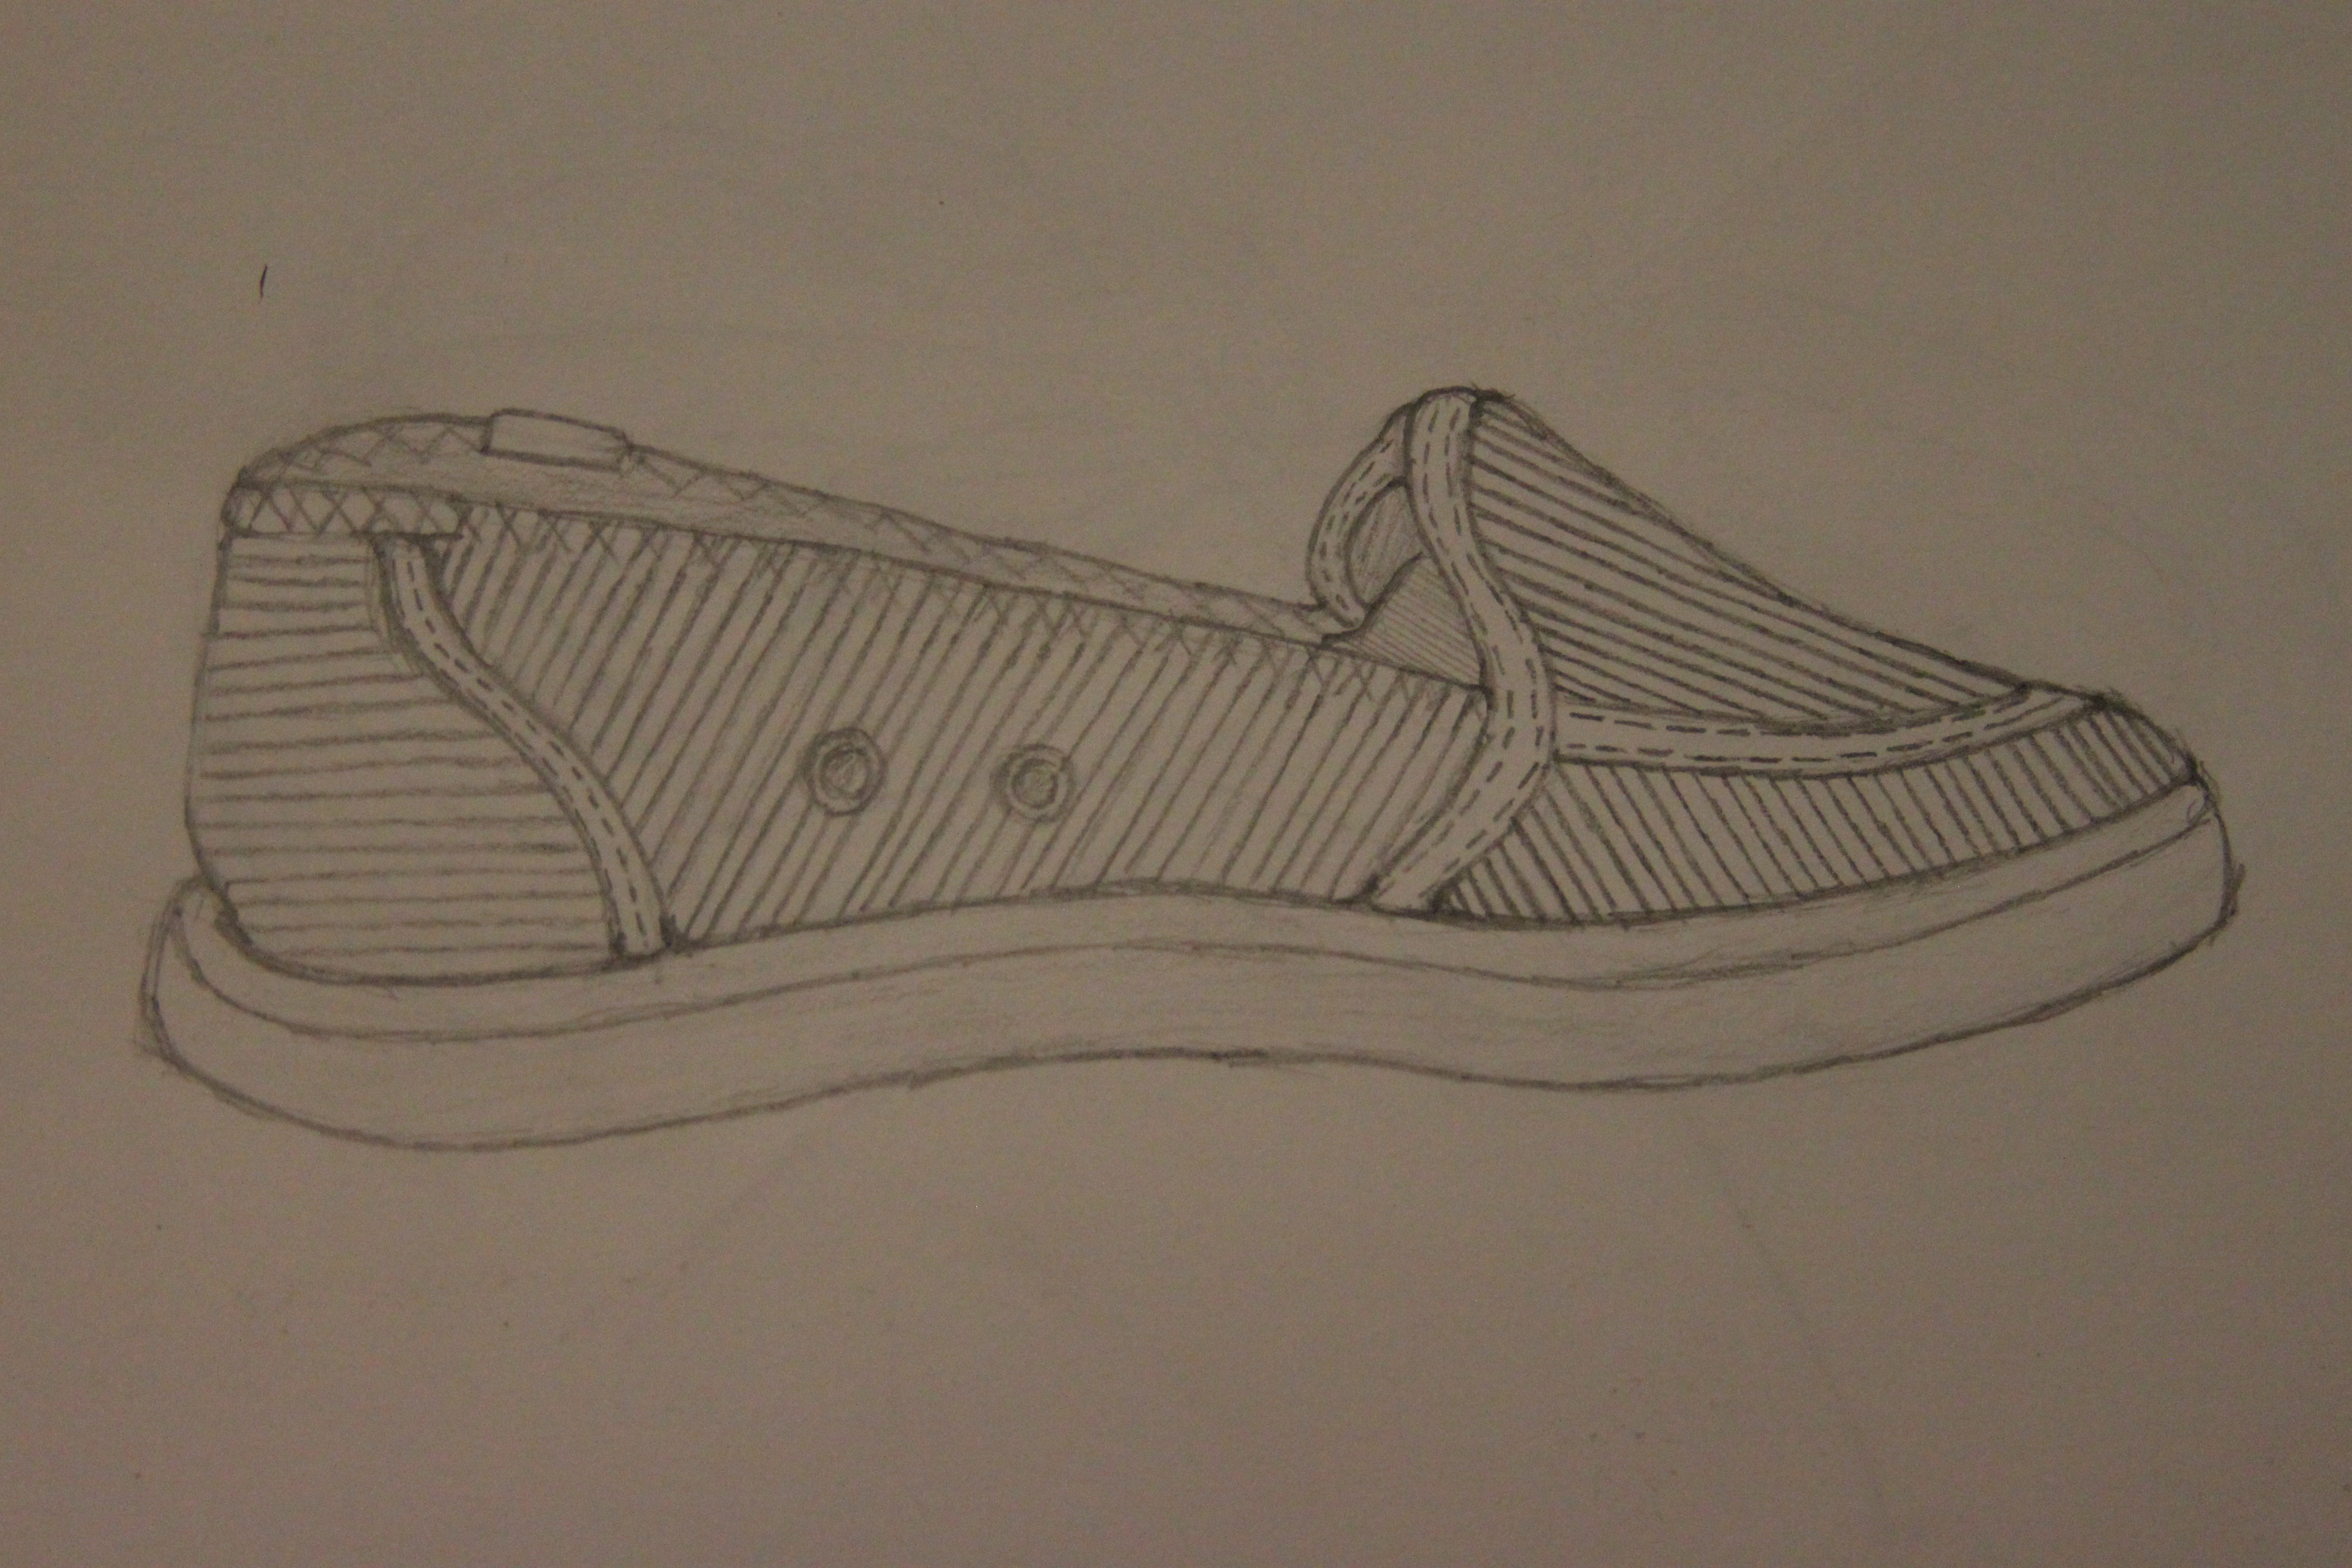 Contour Line Drawing Shoes Lesson Plan : Shoe drawing at getdrawings.com free for personal use